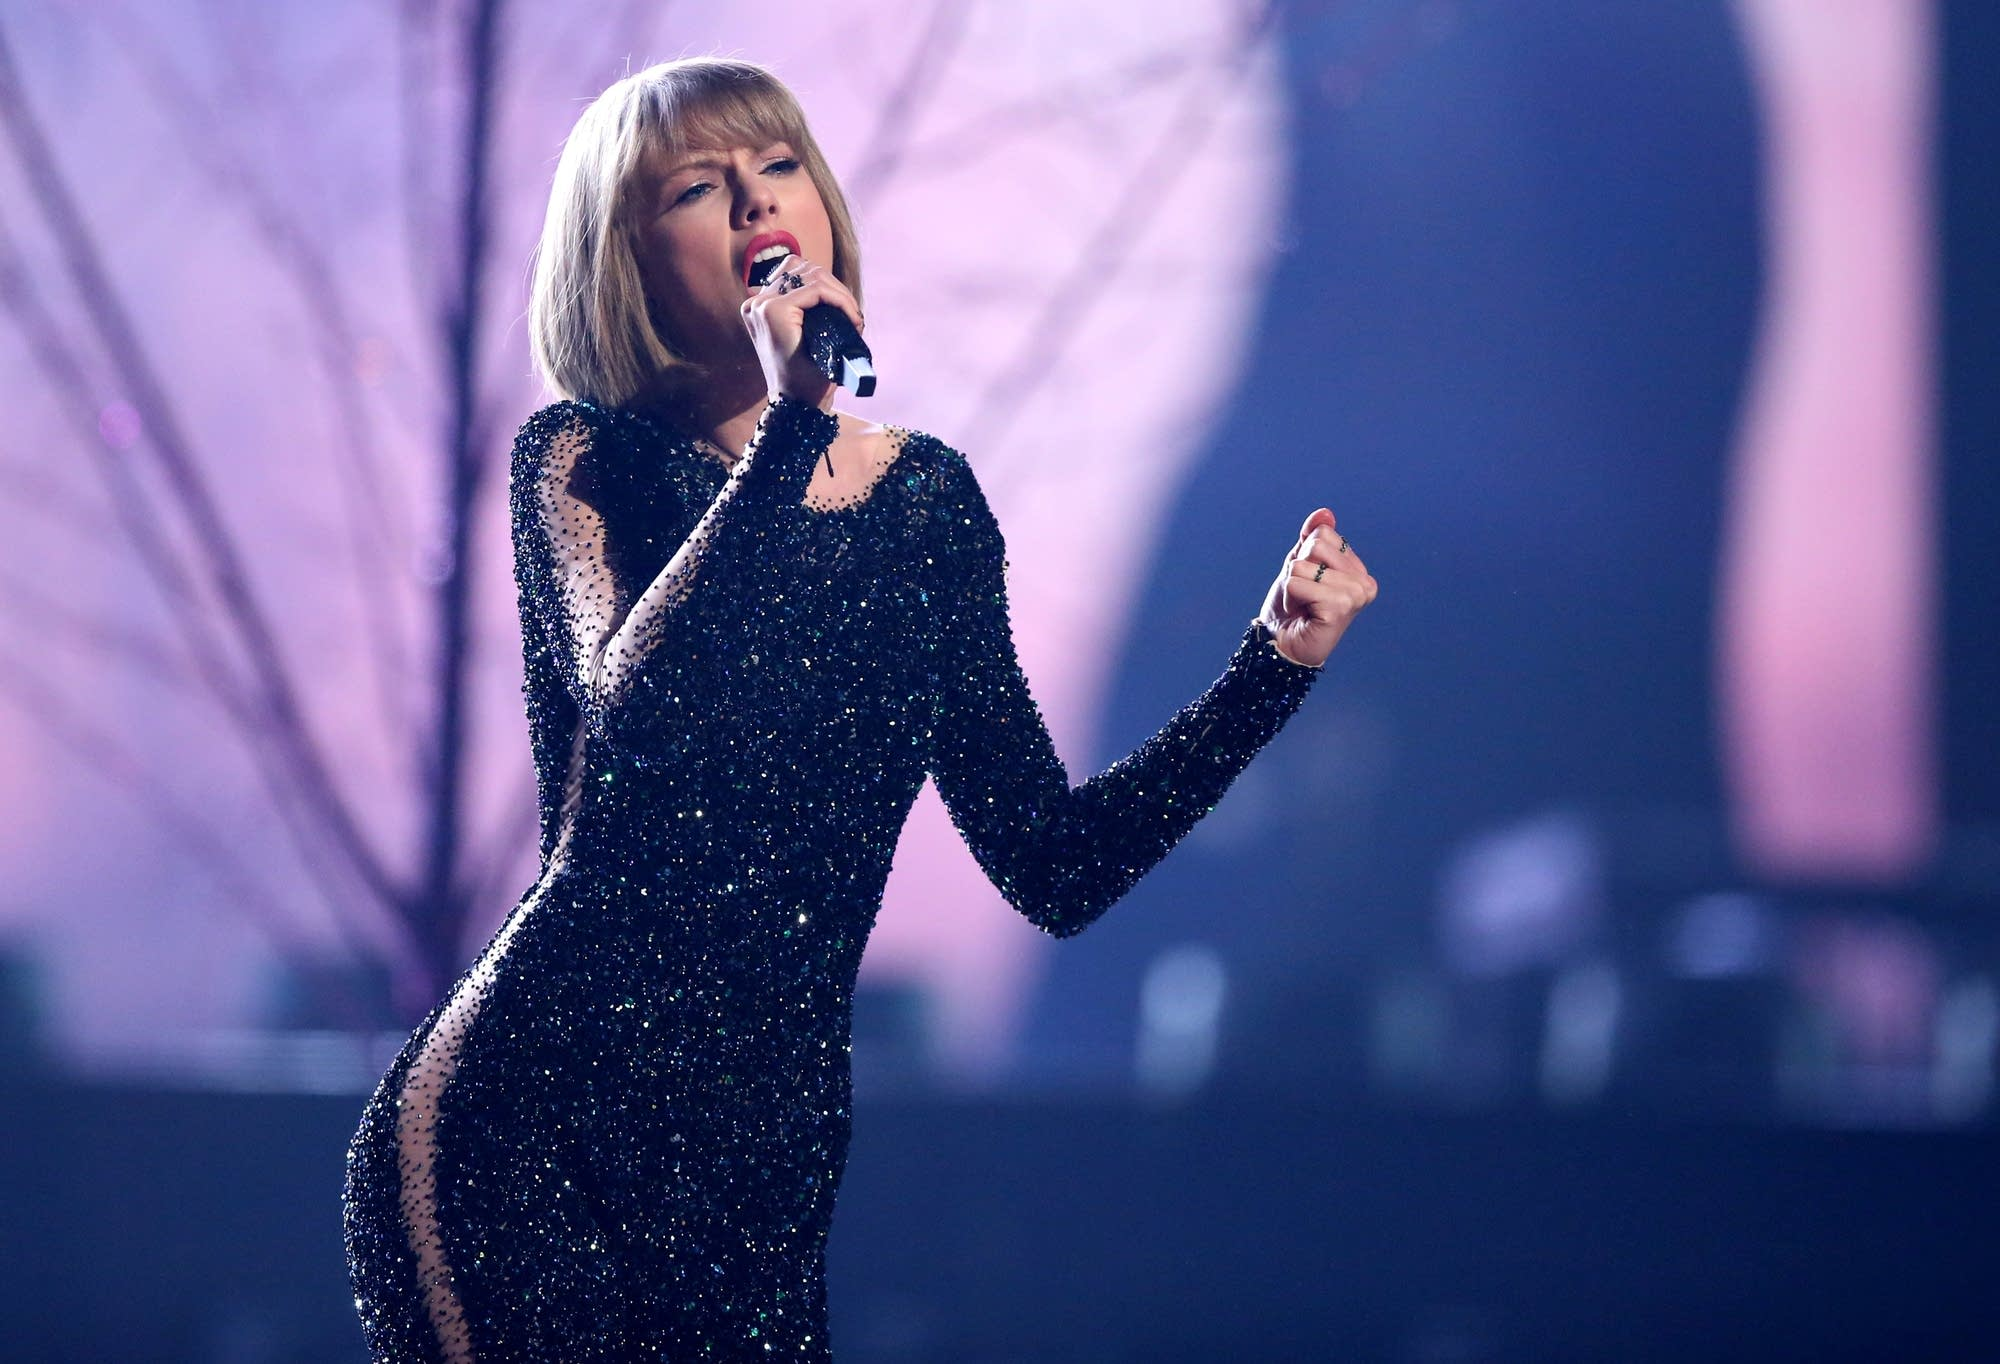 Taylor Swift is on Target's in-store playlist